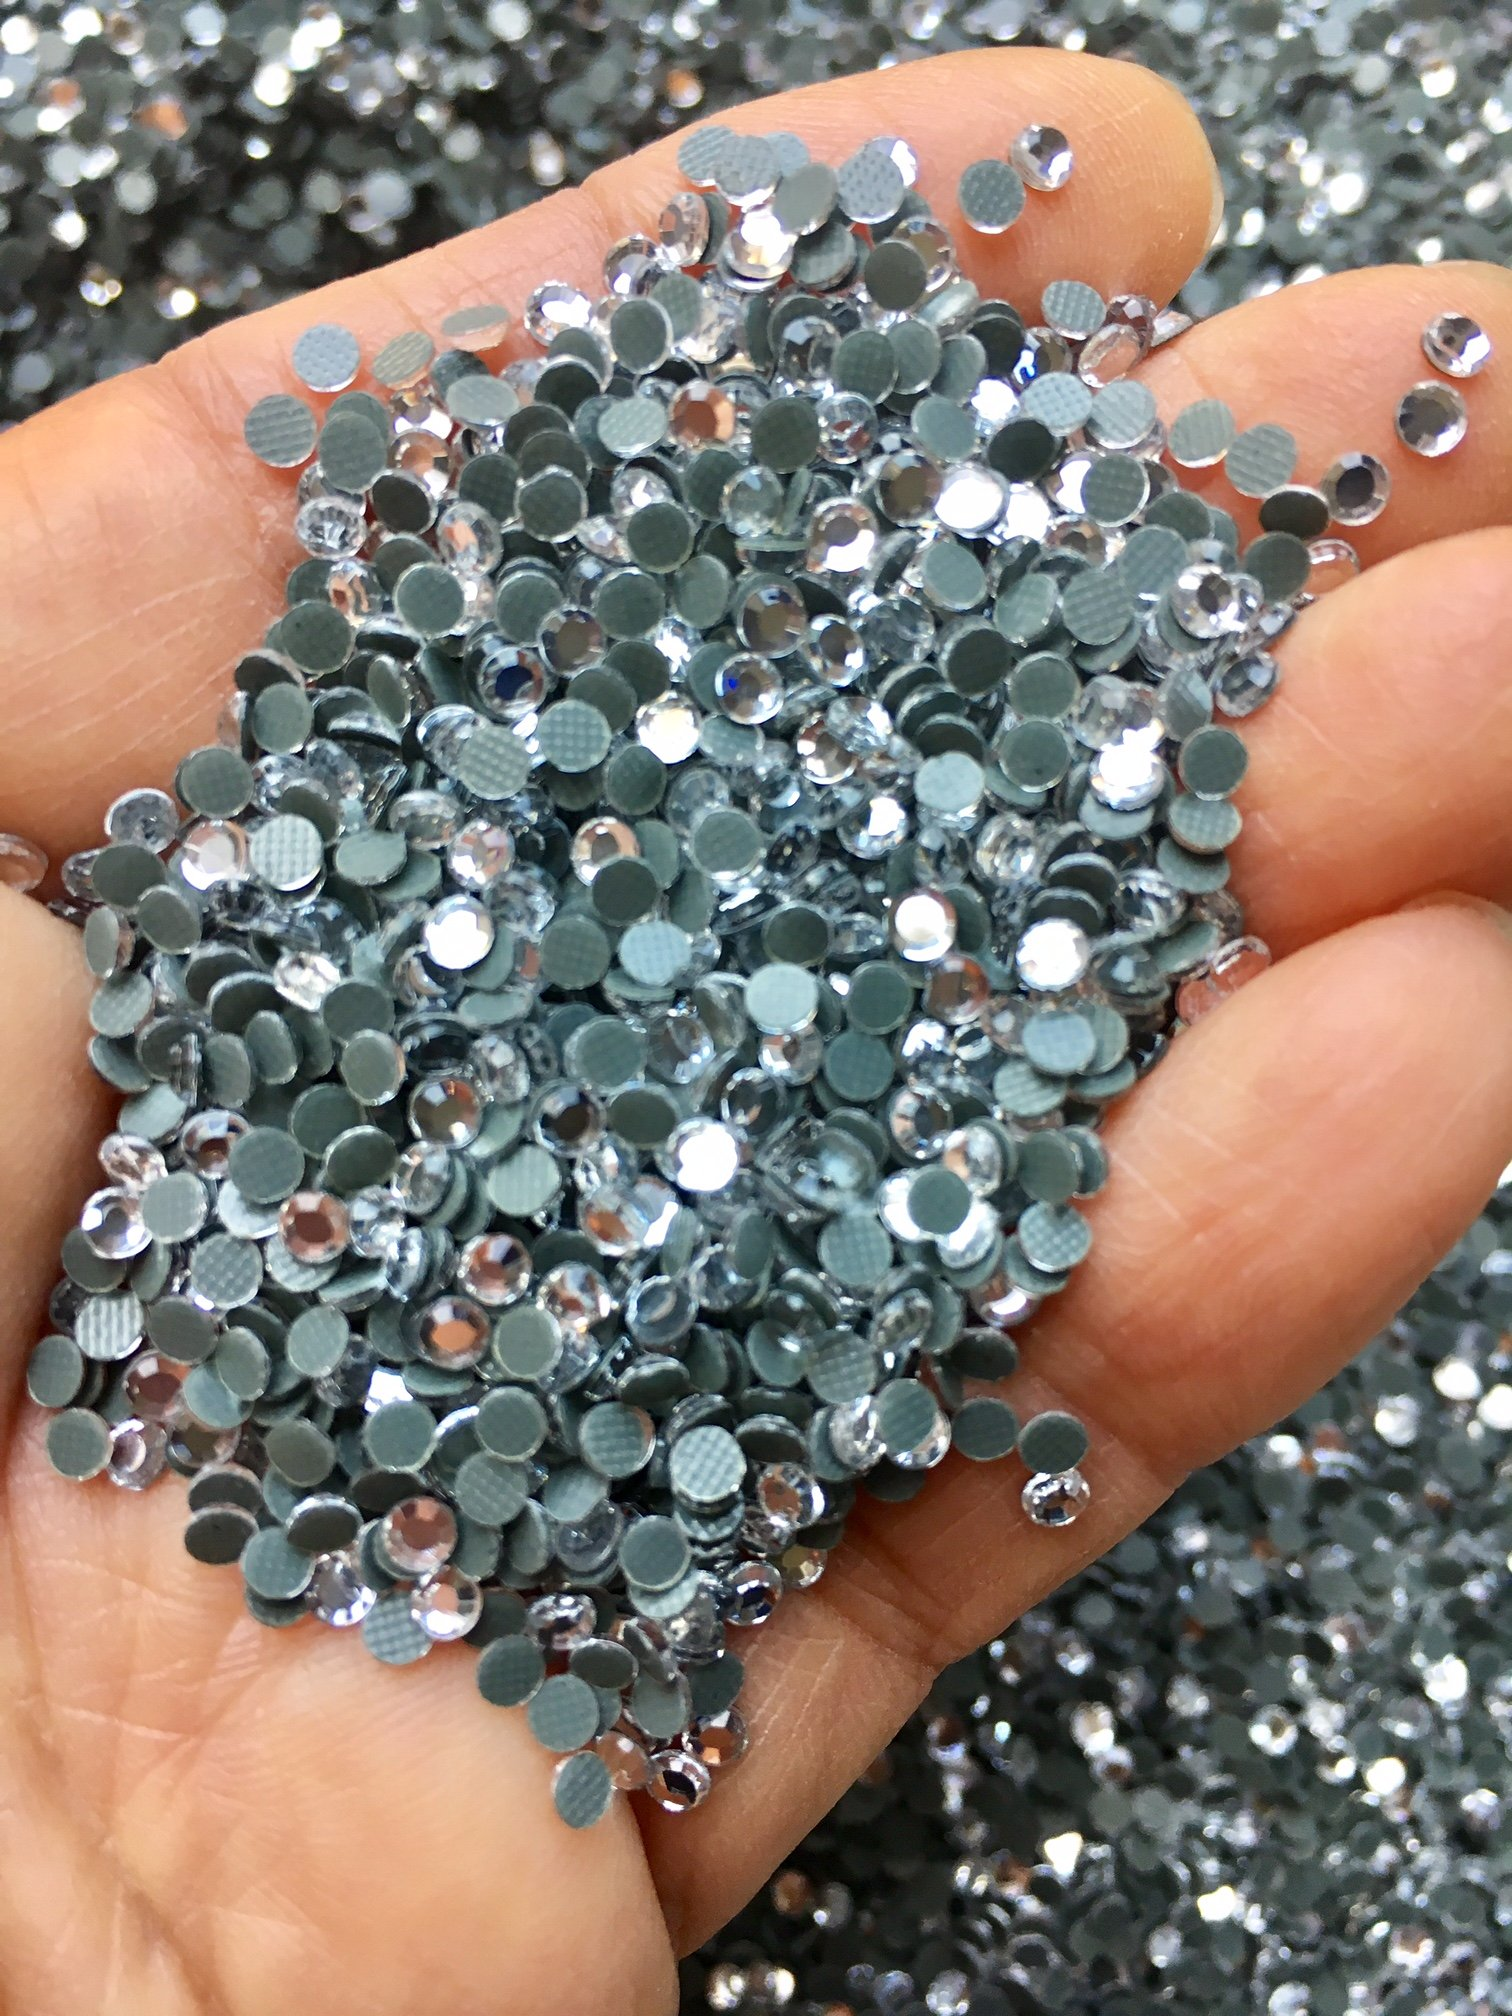 ROCOCO DESIGNS Full Bag of 72,000PCS!! Iron On Loose Crystal Sparkly Rhinestone 3mm 10ss CLEAR Loose Hot Fix Great For Iron On Crafts by Rococo Designs